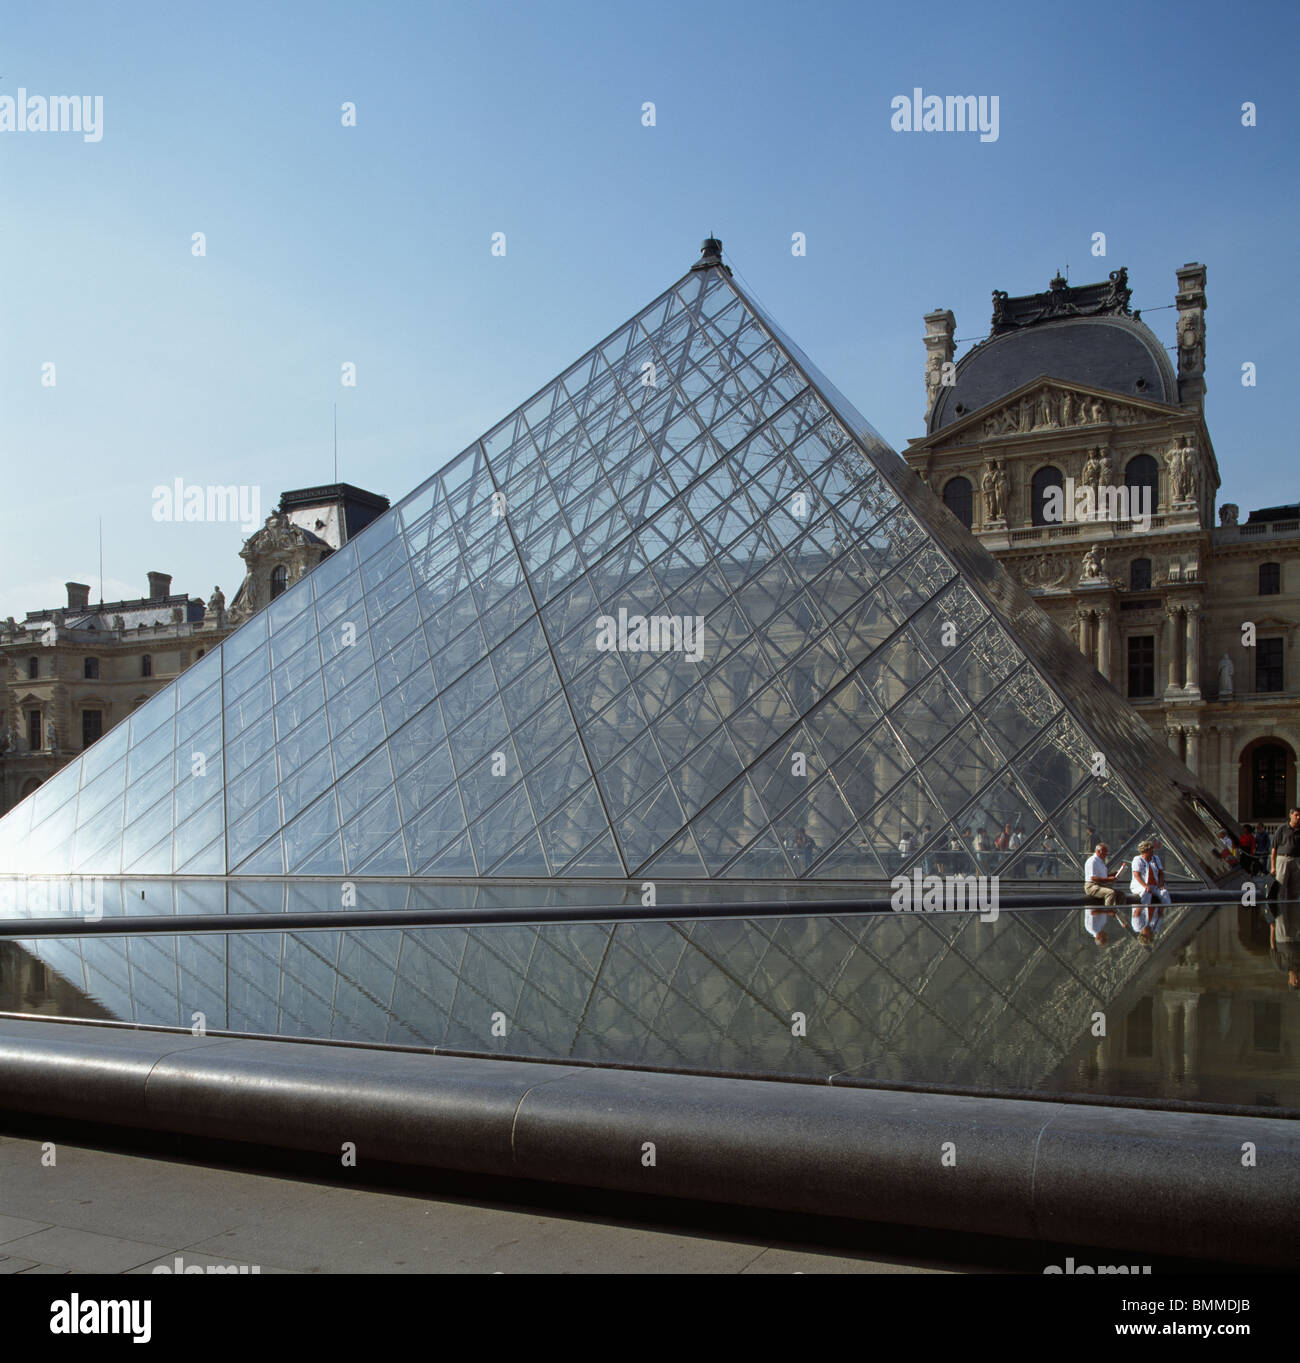 1988 M Stock Photos Images Alamy Ge T701c Turbine Engine Operating Diagram Louvre Museum Paris Steel And Glass Pyramid By Im Pei